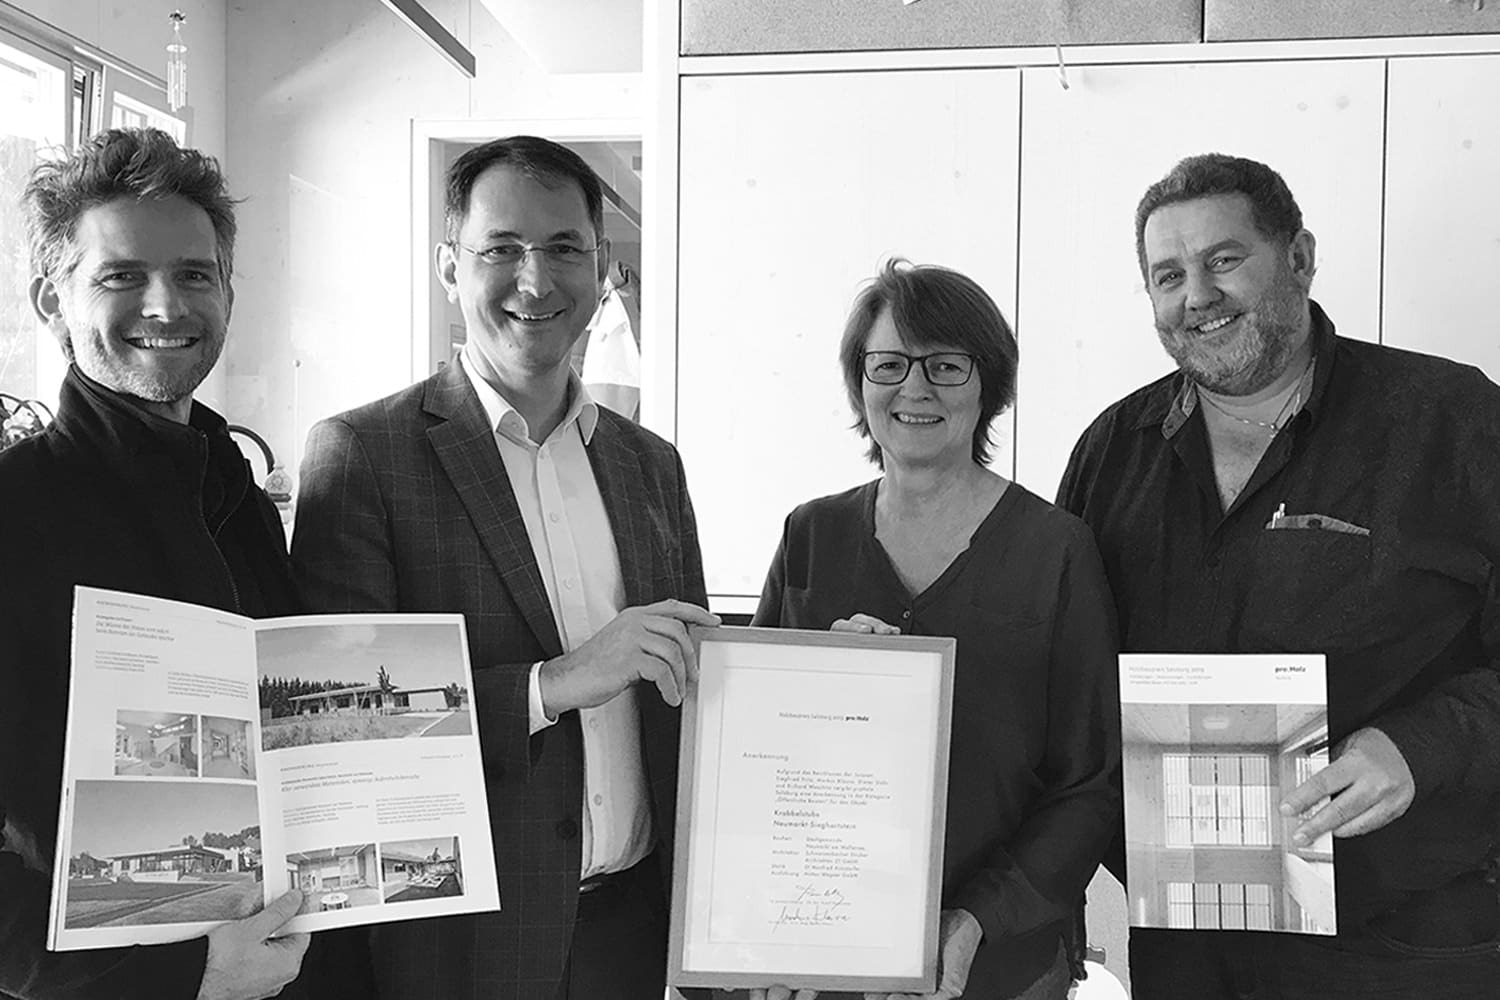 Timber construction award 2019, recognition